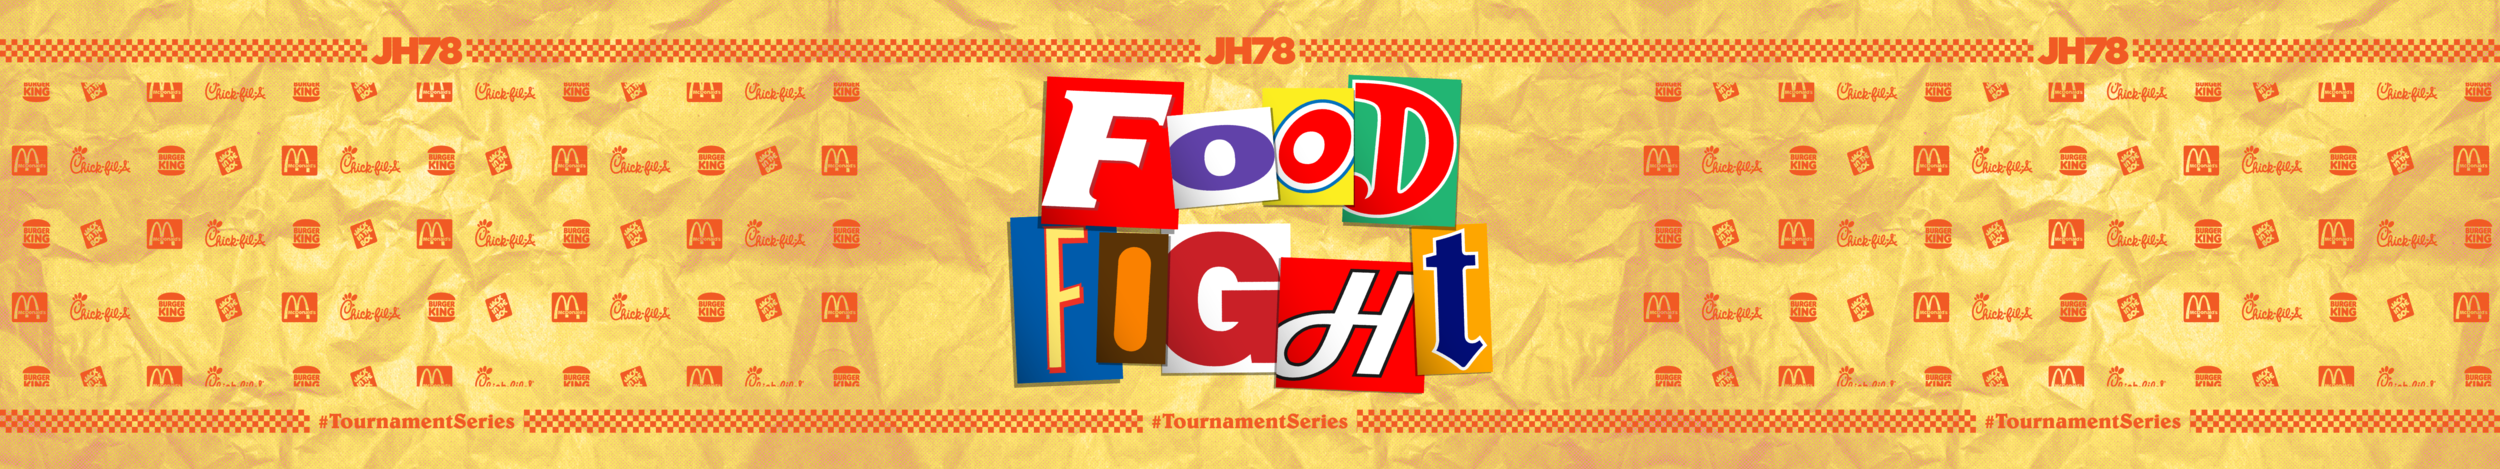 FoodFight_FoodFight Triplewide.png